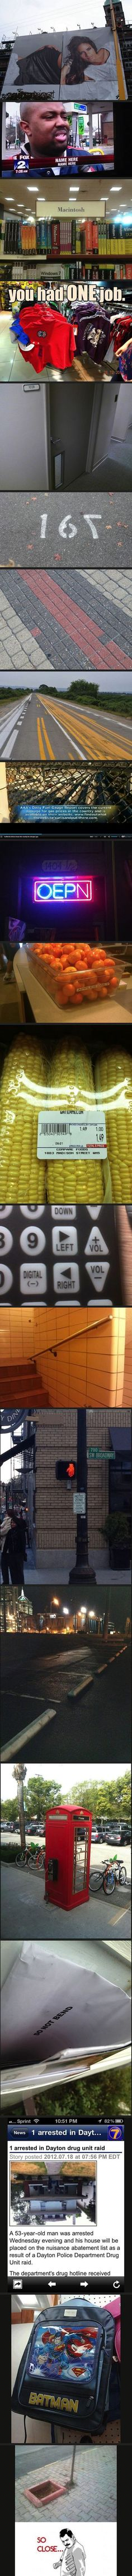 'You had one job' Read More Funny: http://wdb.es/?utm_campaign=wdb.es&utm_medium=pinterest&utm_source=pinterst-description&utm_content=&utm_term=